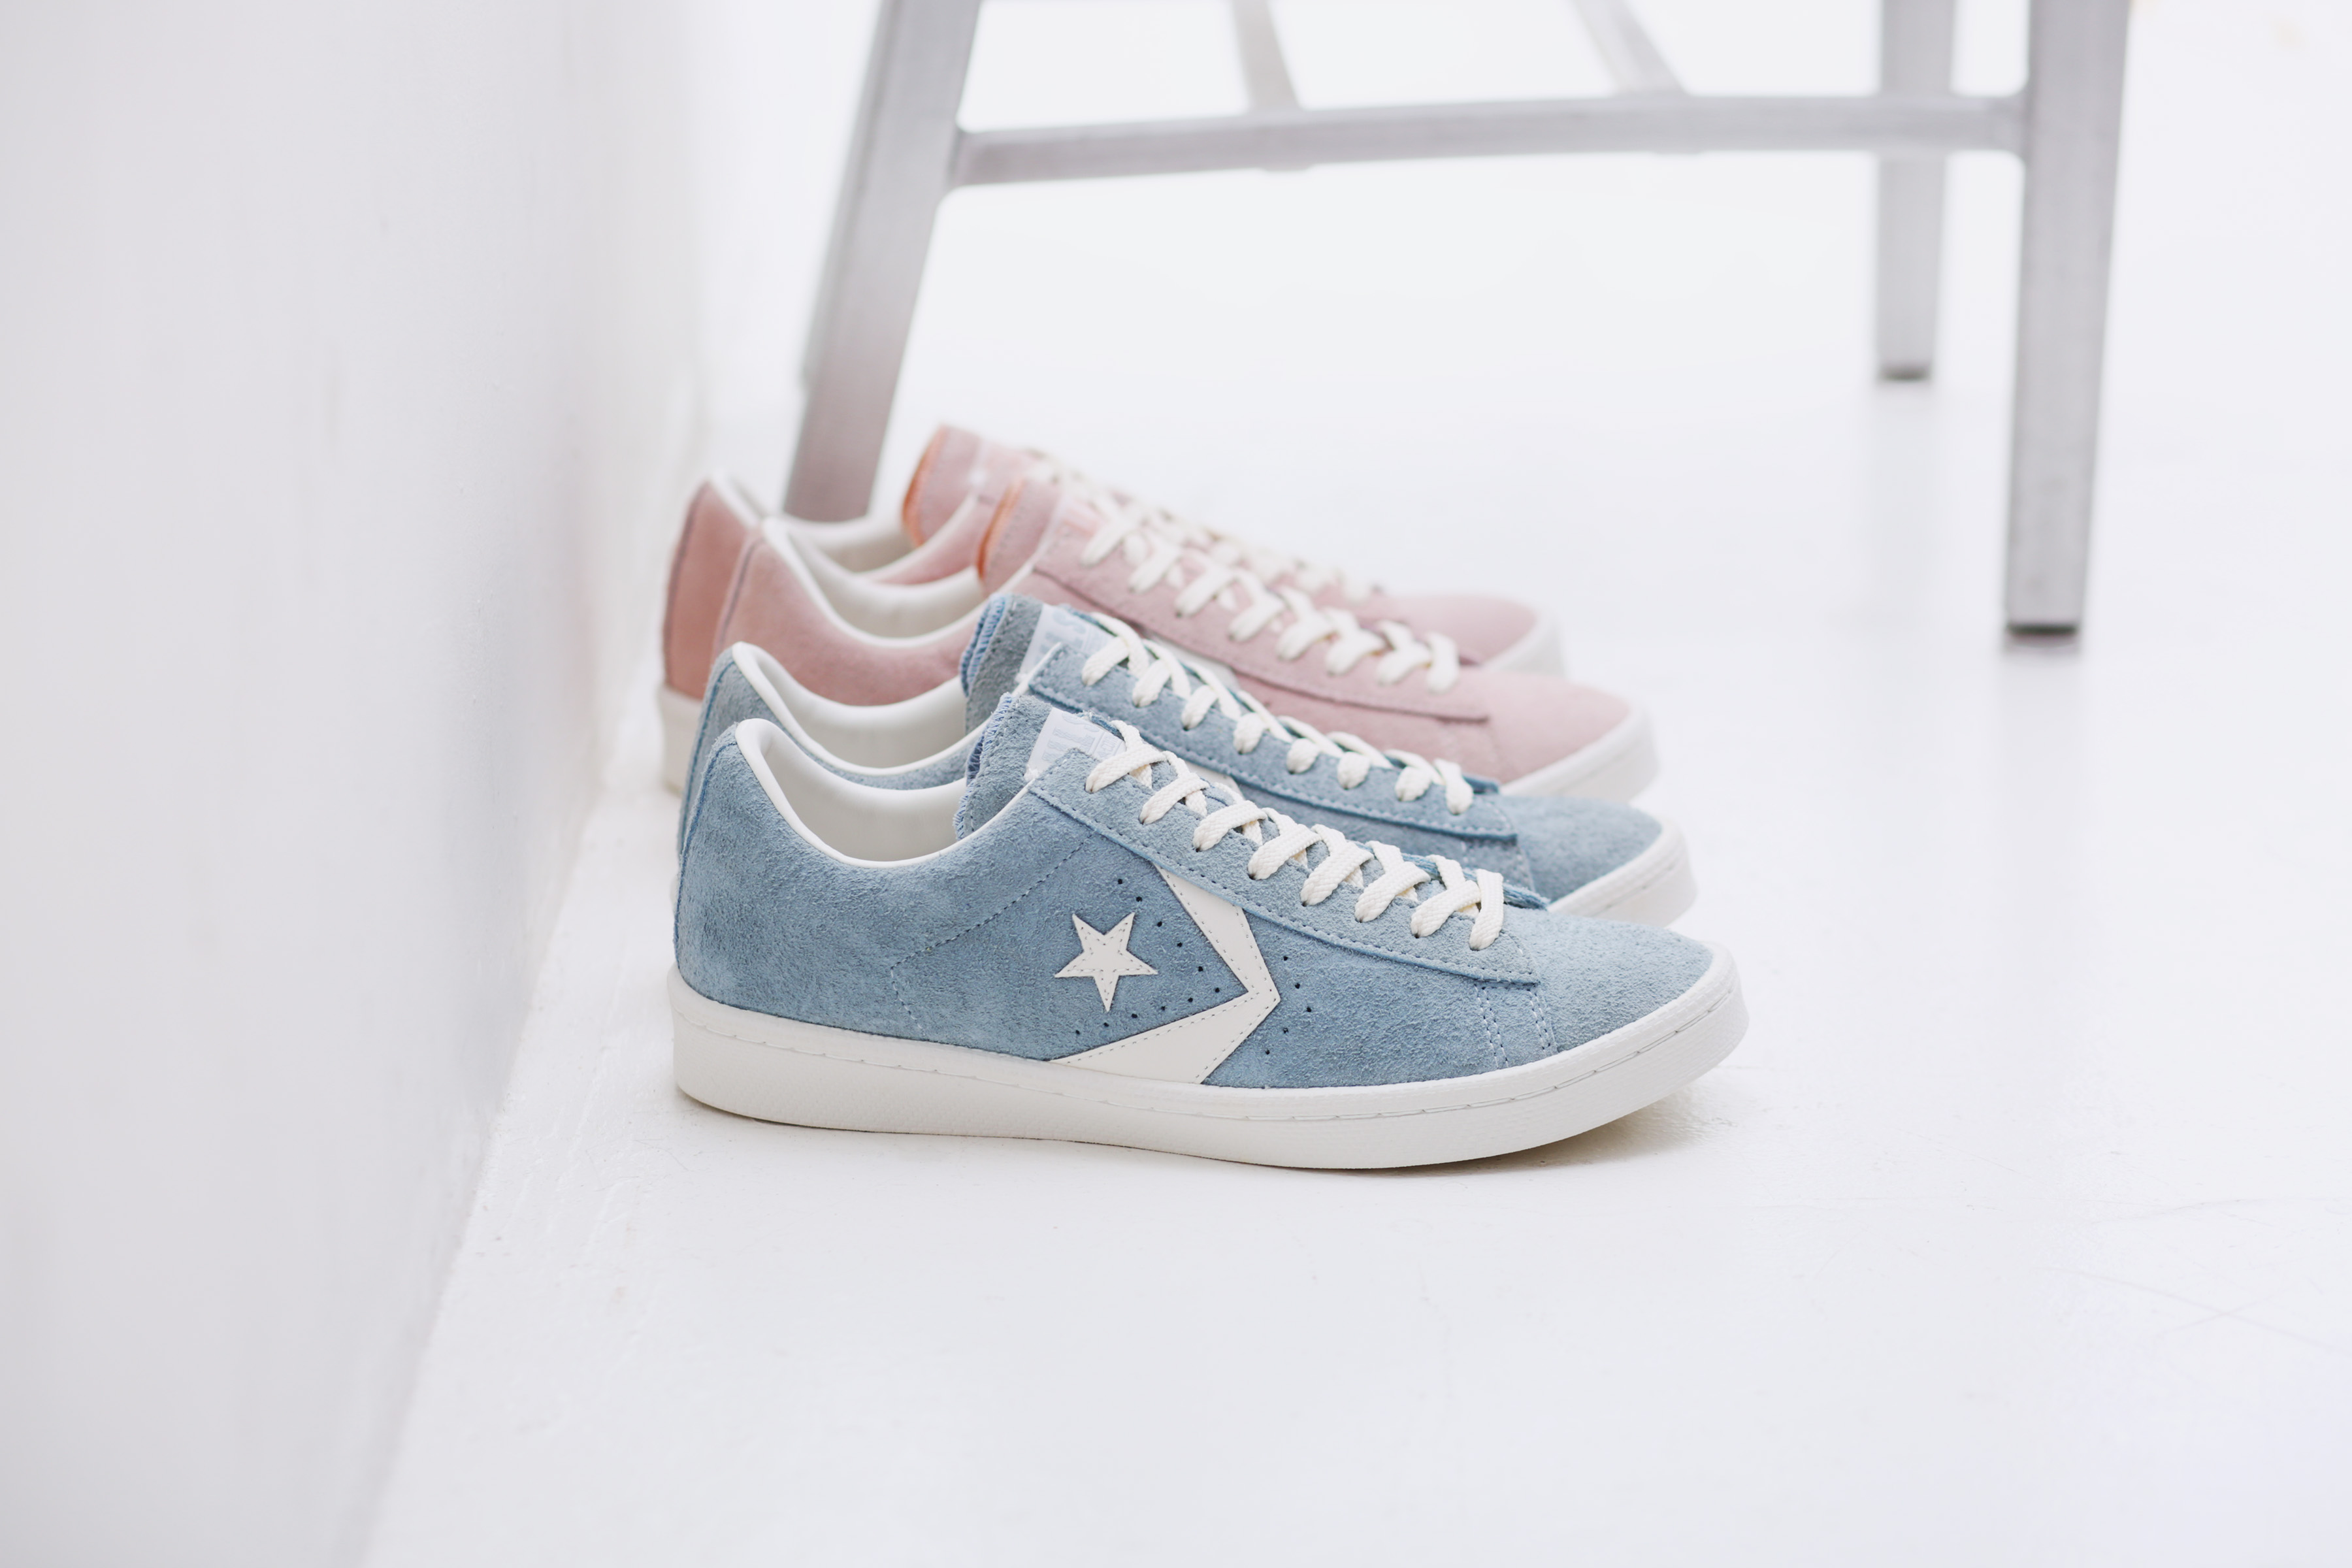 converse_pro_leather_suede_ox_32755502_32755506